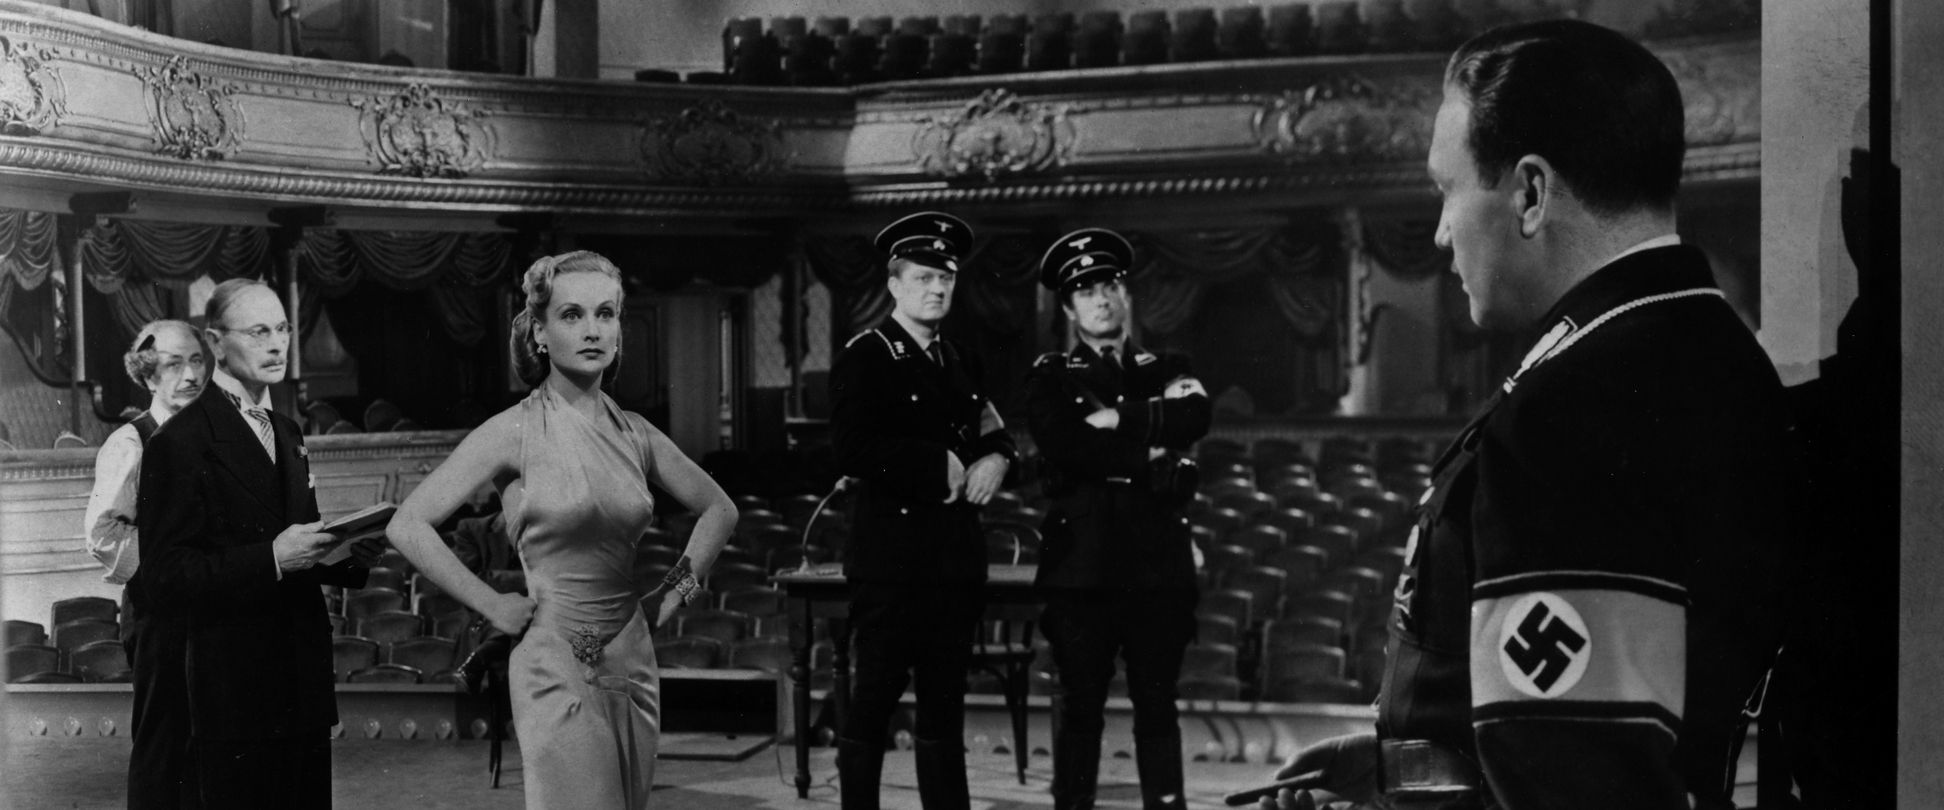 to-be-or-no-to-be_ser-o-no-ser_ernst-lubitsch-1942